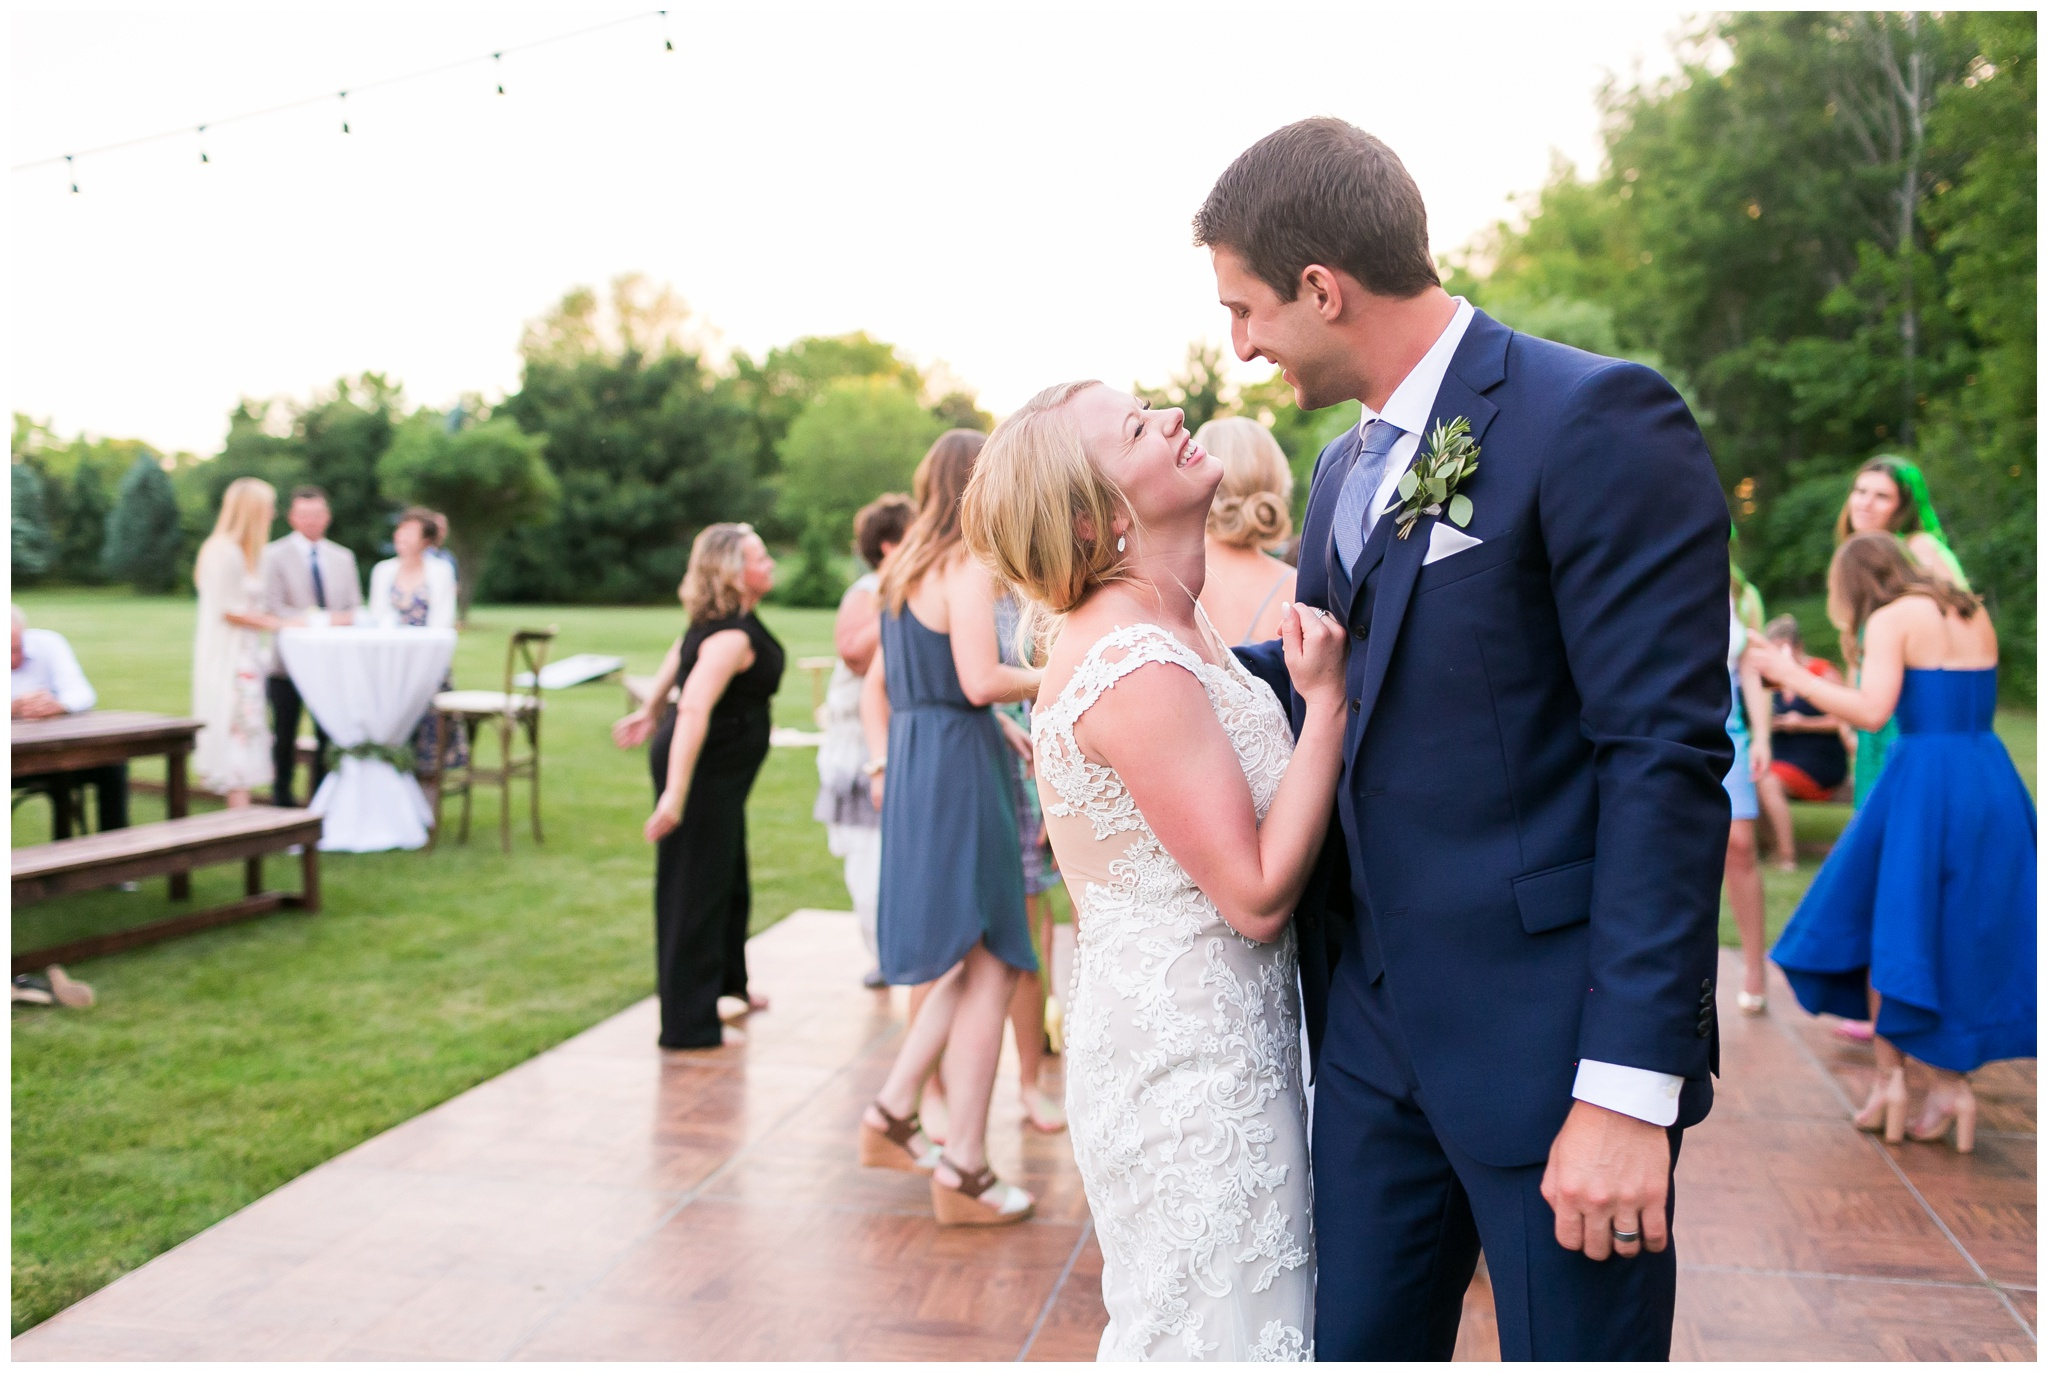 private_estate_wedding_stoughton_wisconsin_wedding_caynay_photo_3903.jpg